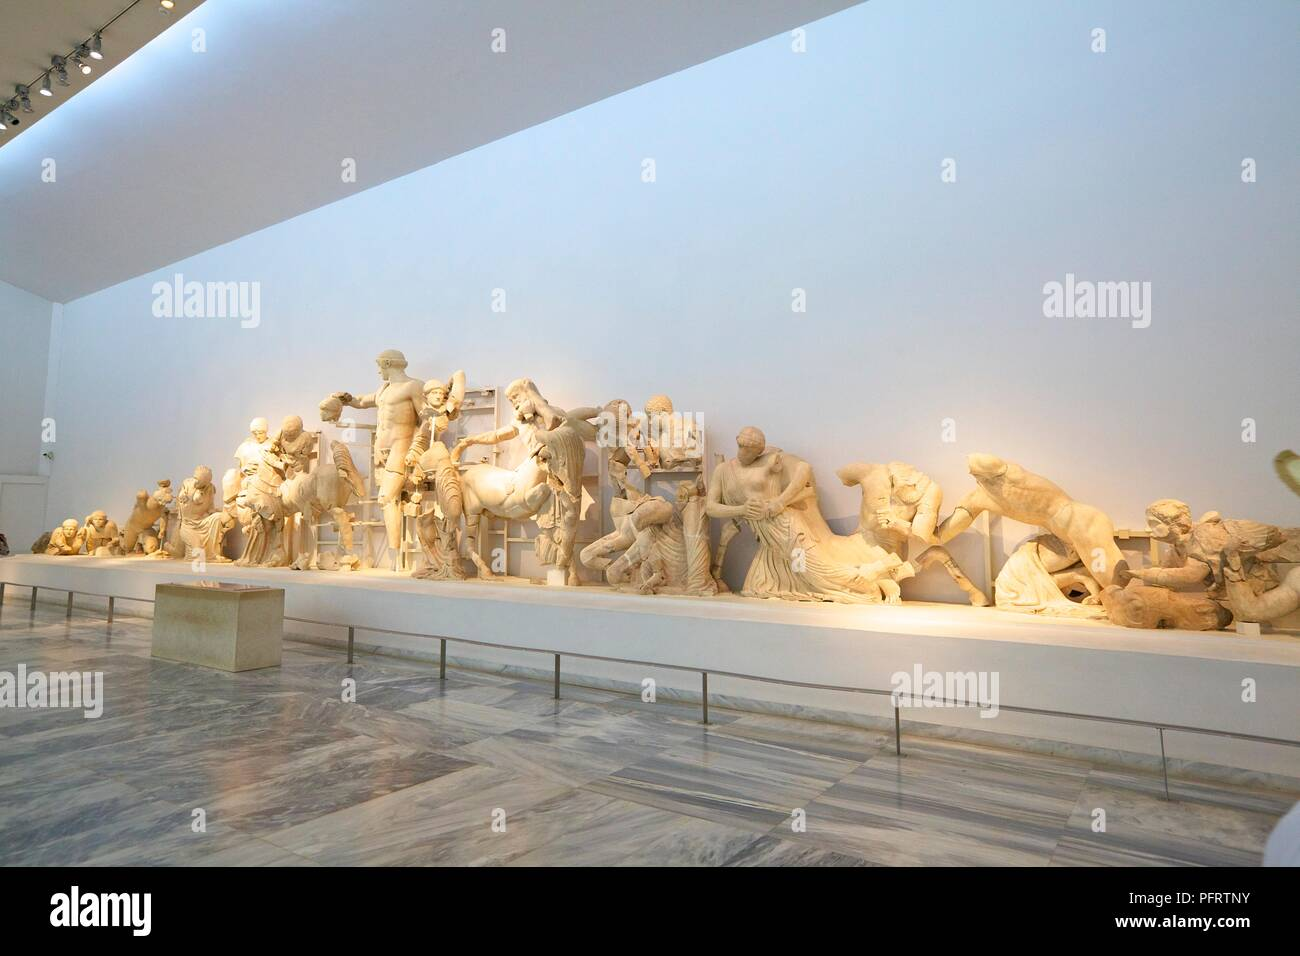 West Pediment of the Temple of Zeus, Olympia, Arcadia, The Peloponnese, Greece, Southern Europe - Stock Image